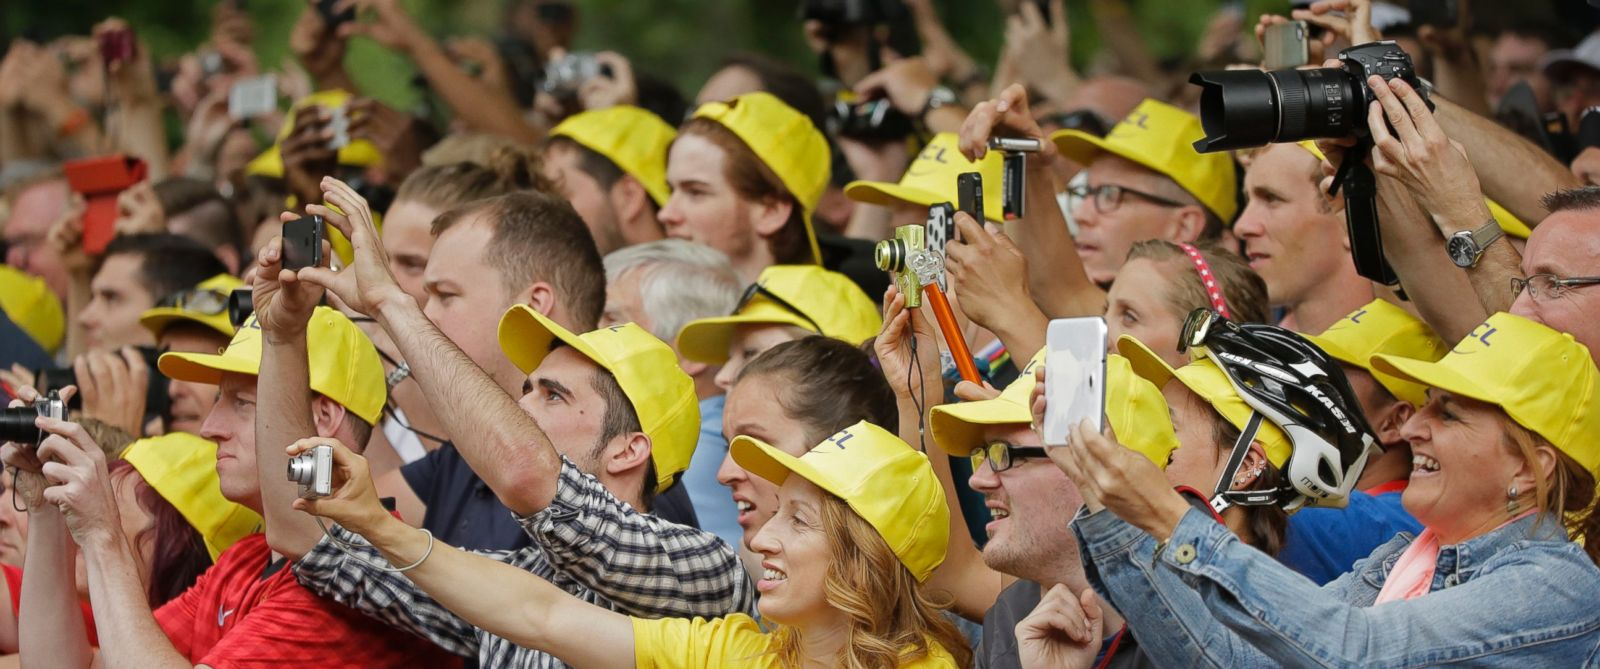 PHOTO: Spectators take pictures of the podium ceremony of the third stage of the Tour de France cycling race over 155 kilometers (96.3 miles) with start in Cambridge and finish in London, England, July 7, 2014.